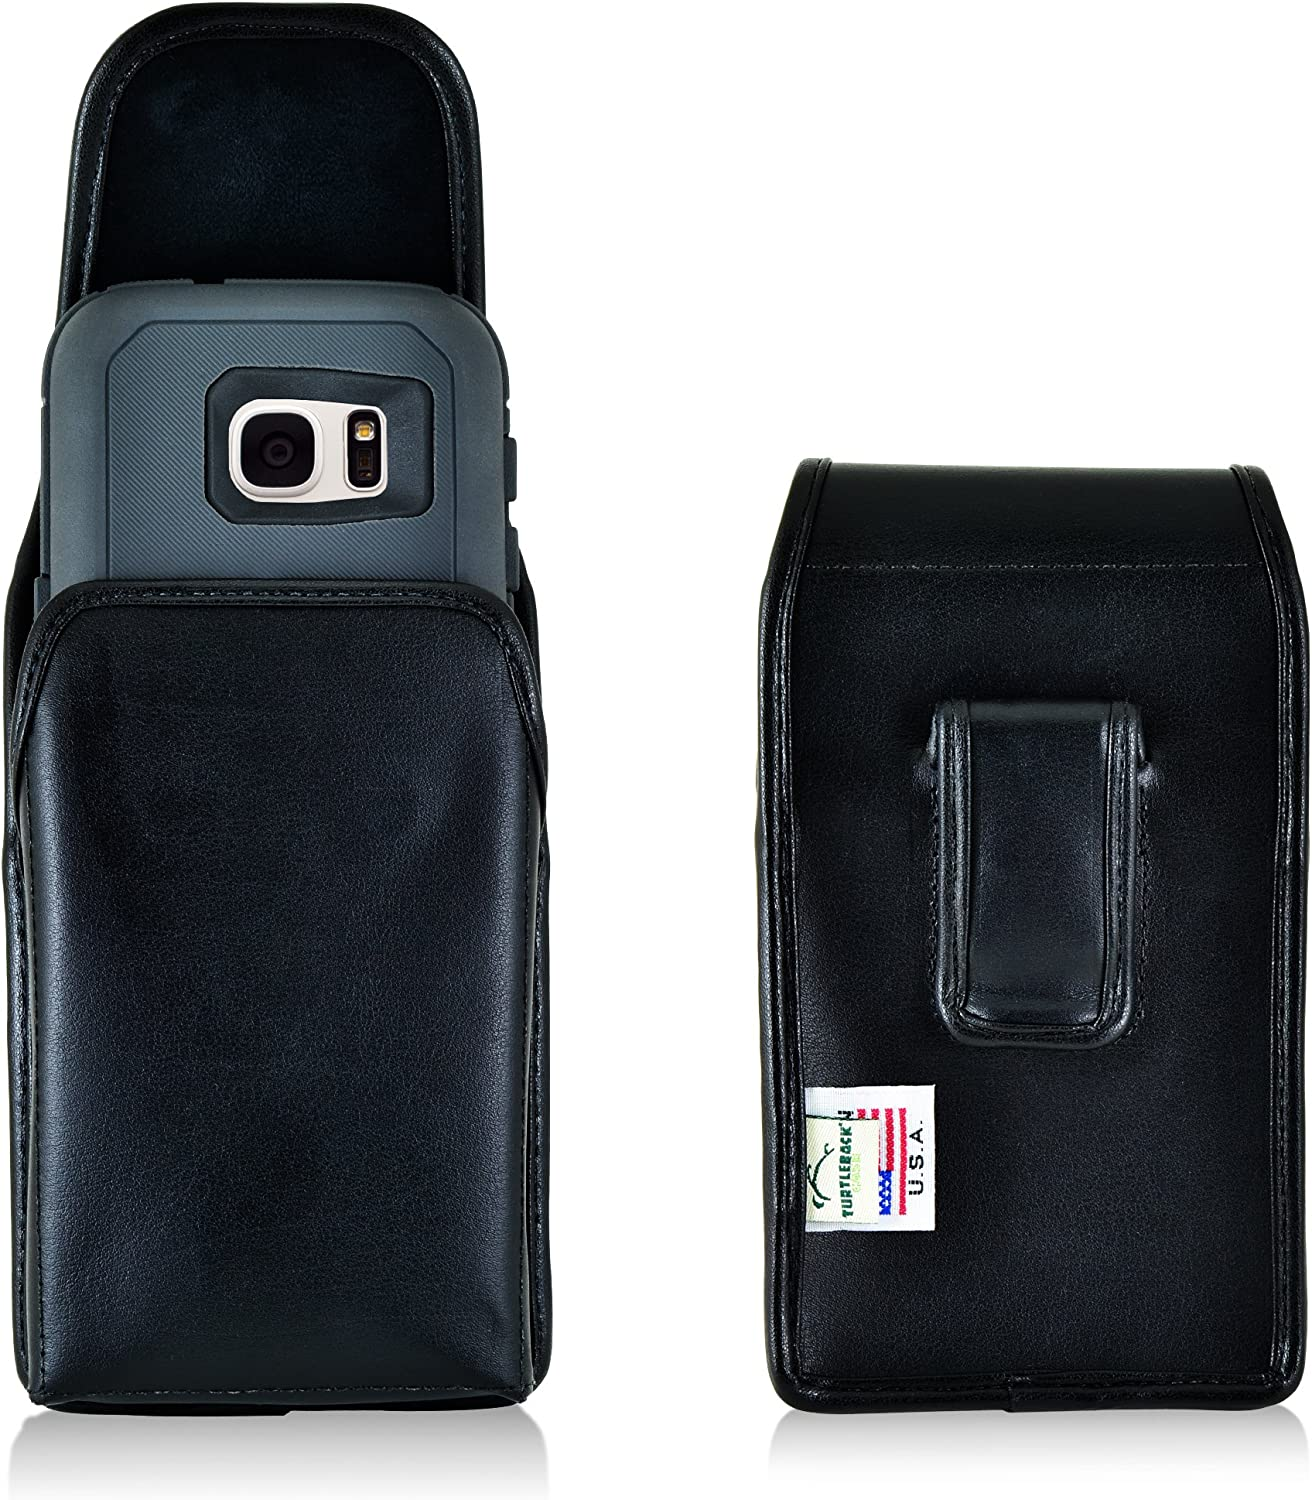 Turtleback Holster Made for Samsung Galaxy S7 with OB Defender or Bulky Cases, Black Vertical Belt Case Leather Pouch with Executive Belt Clip Made in USA